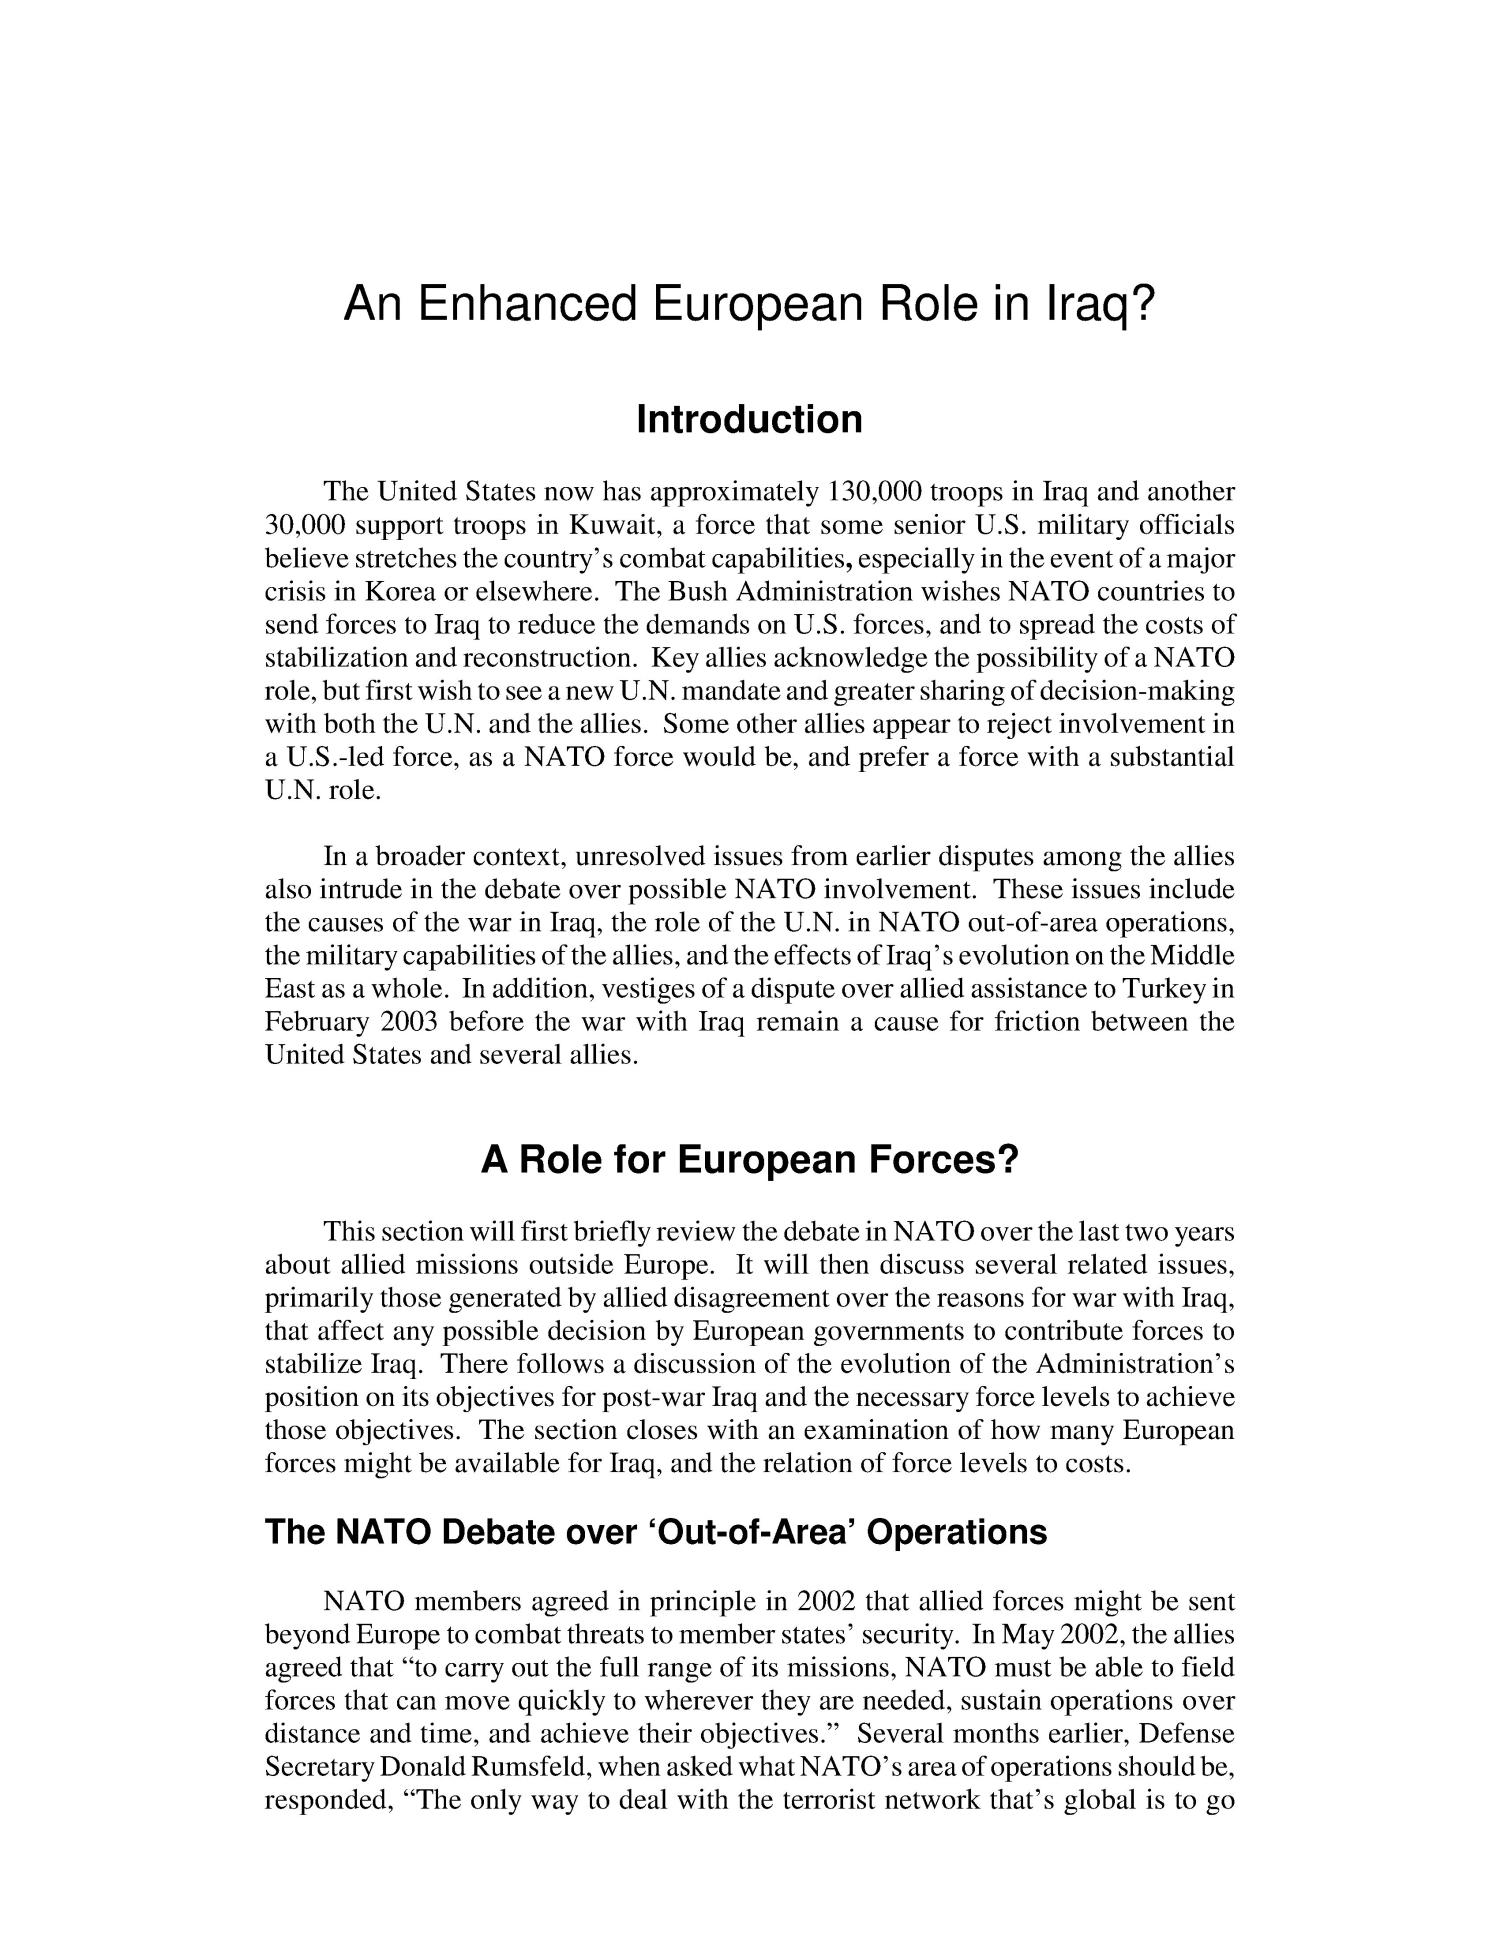 An Enhanced European Role in Iraq?                                                                                                      [Sequence #]: 4 of 15